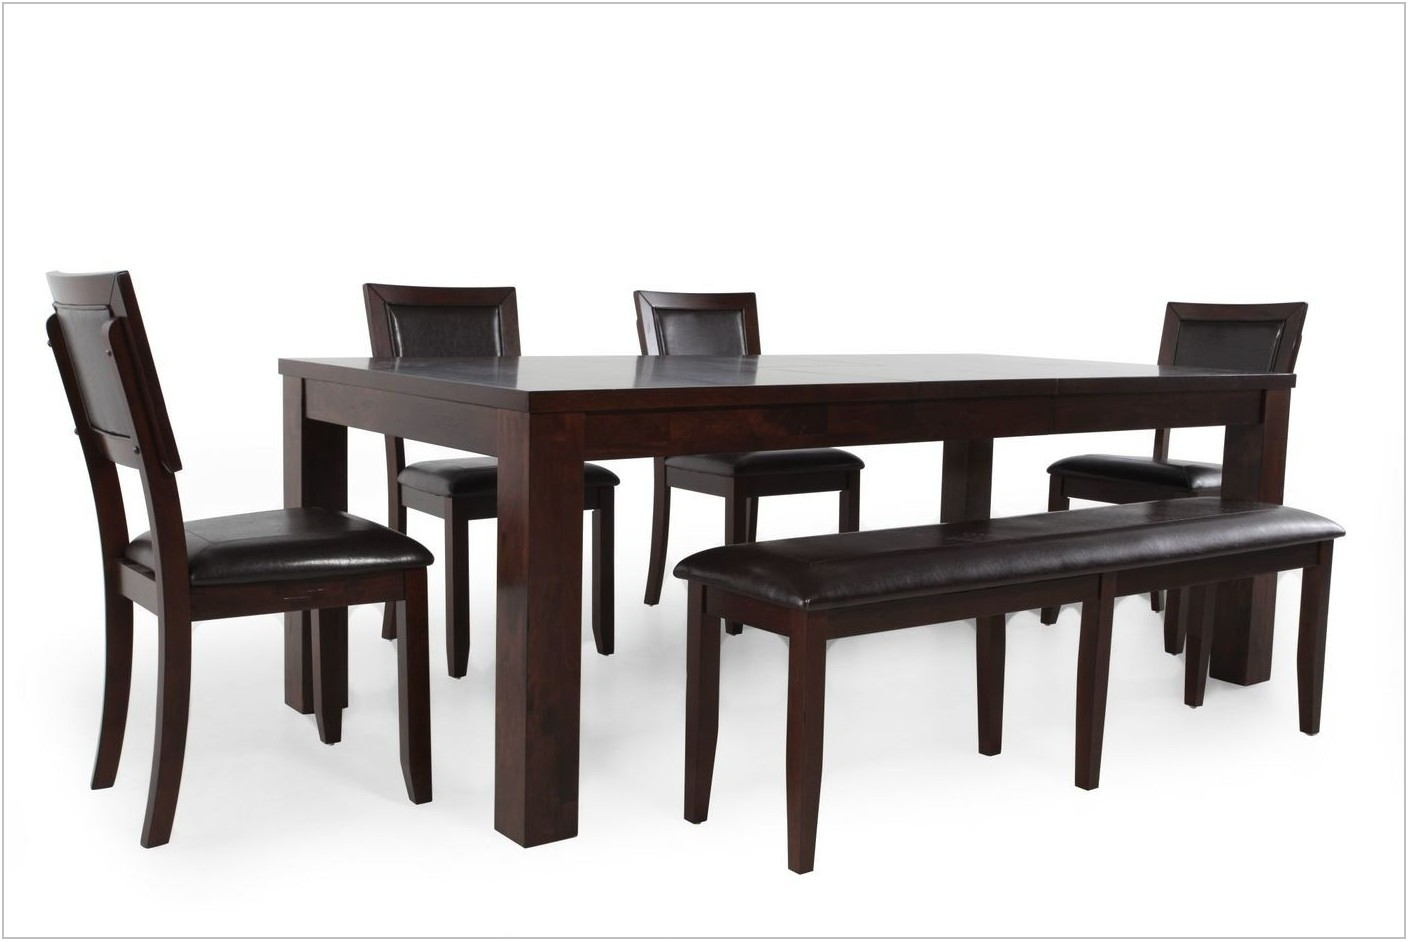 Mathis Brothers Furniture Dining Room Sets